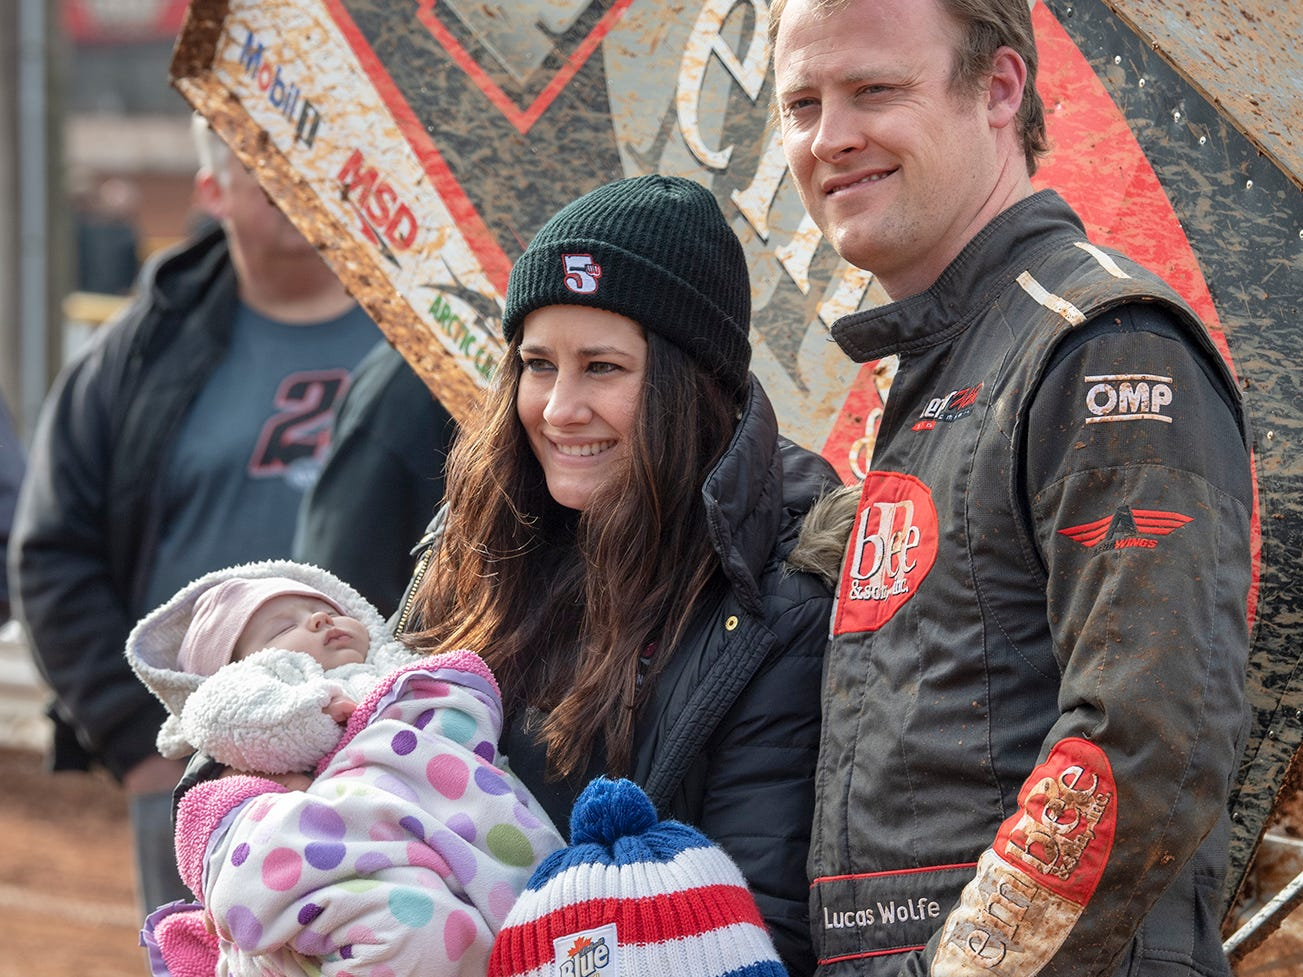 Lucas Wolfe, right, driving the 24 car won the Lincoln Speedway Ice Breaker 30 on Sunday near Abbottstown. He stands with his wife Tasha and children Vera, age 4, and Vivienne, age 2.